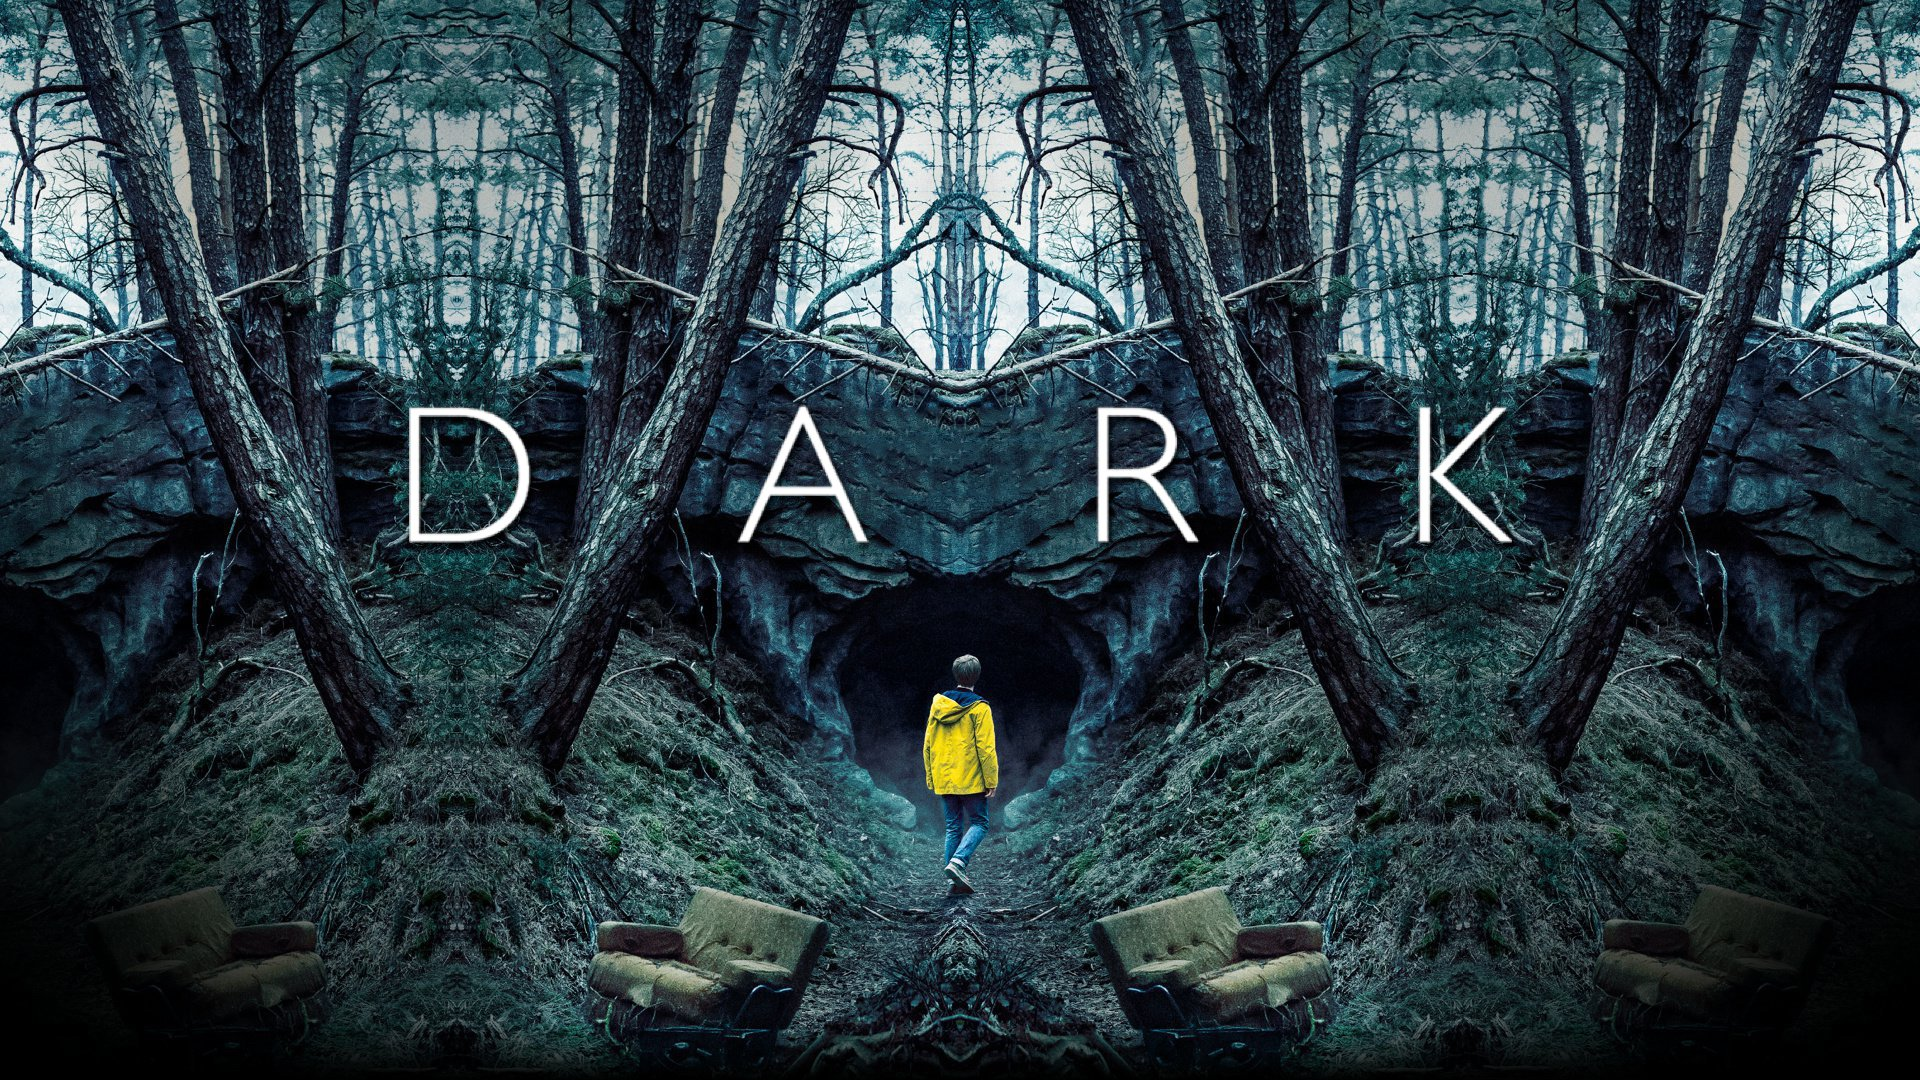 Third and final season Dark to release this June